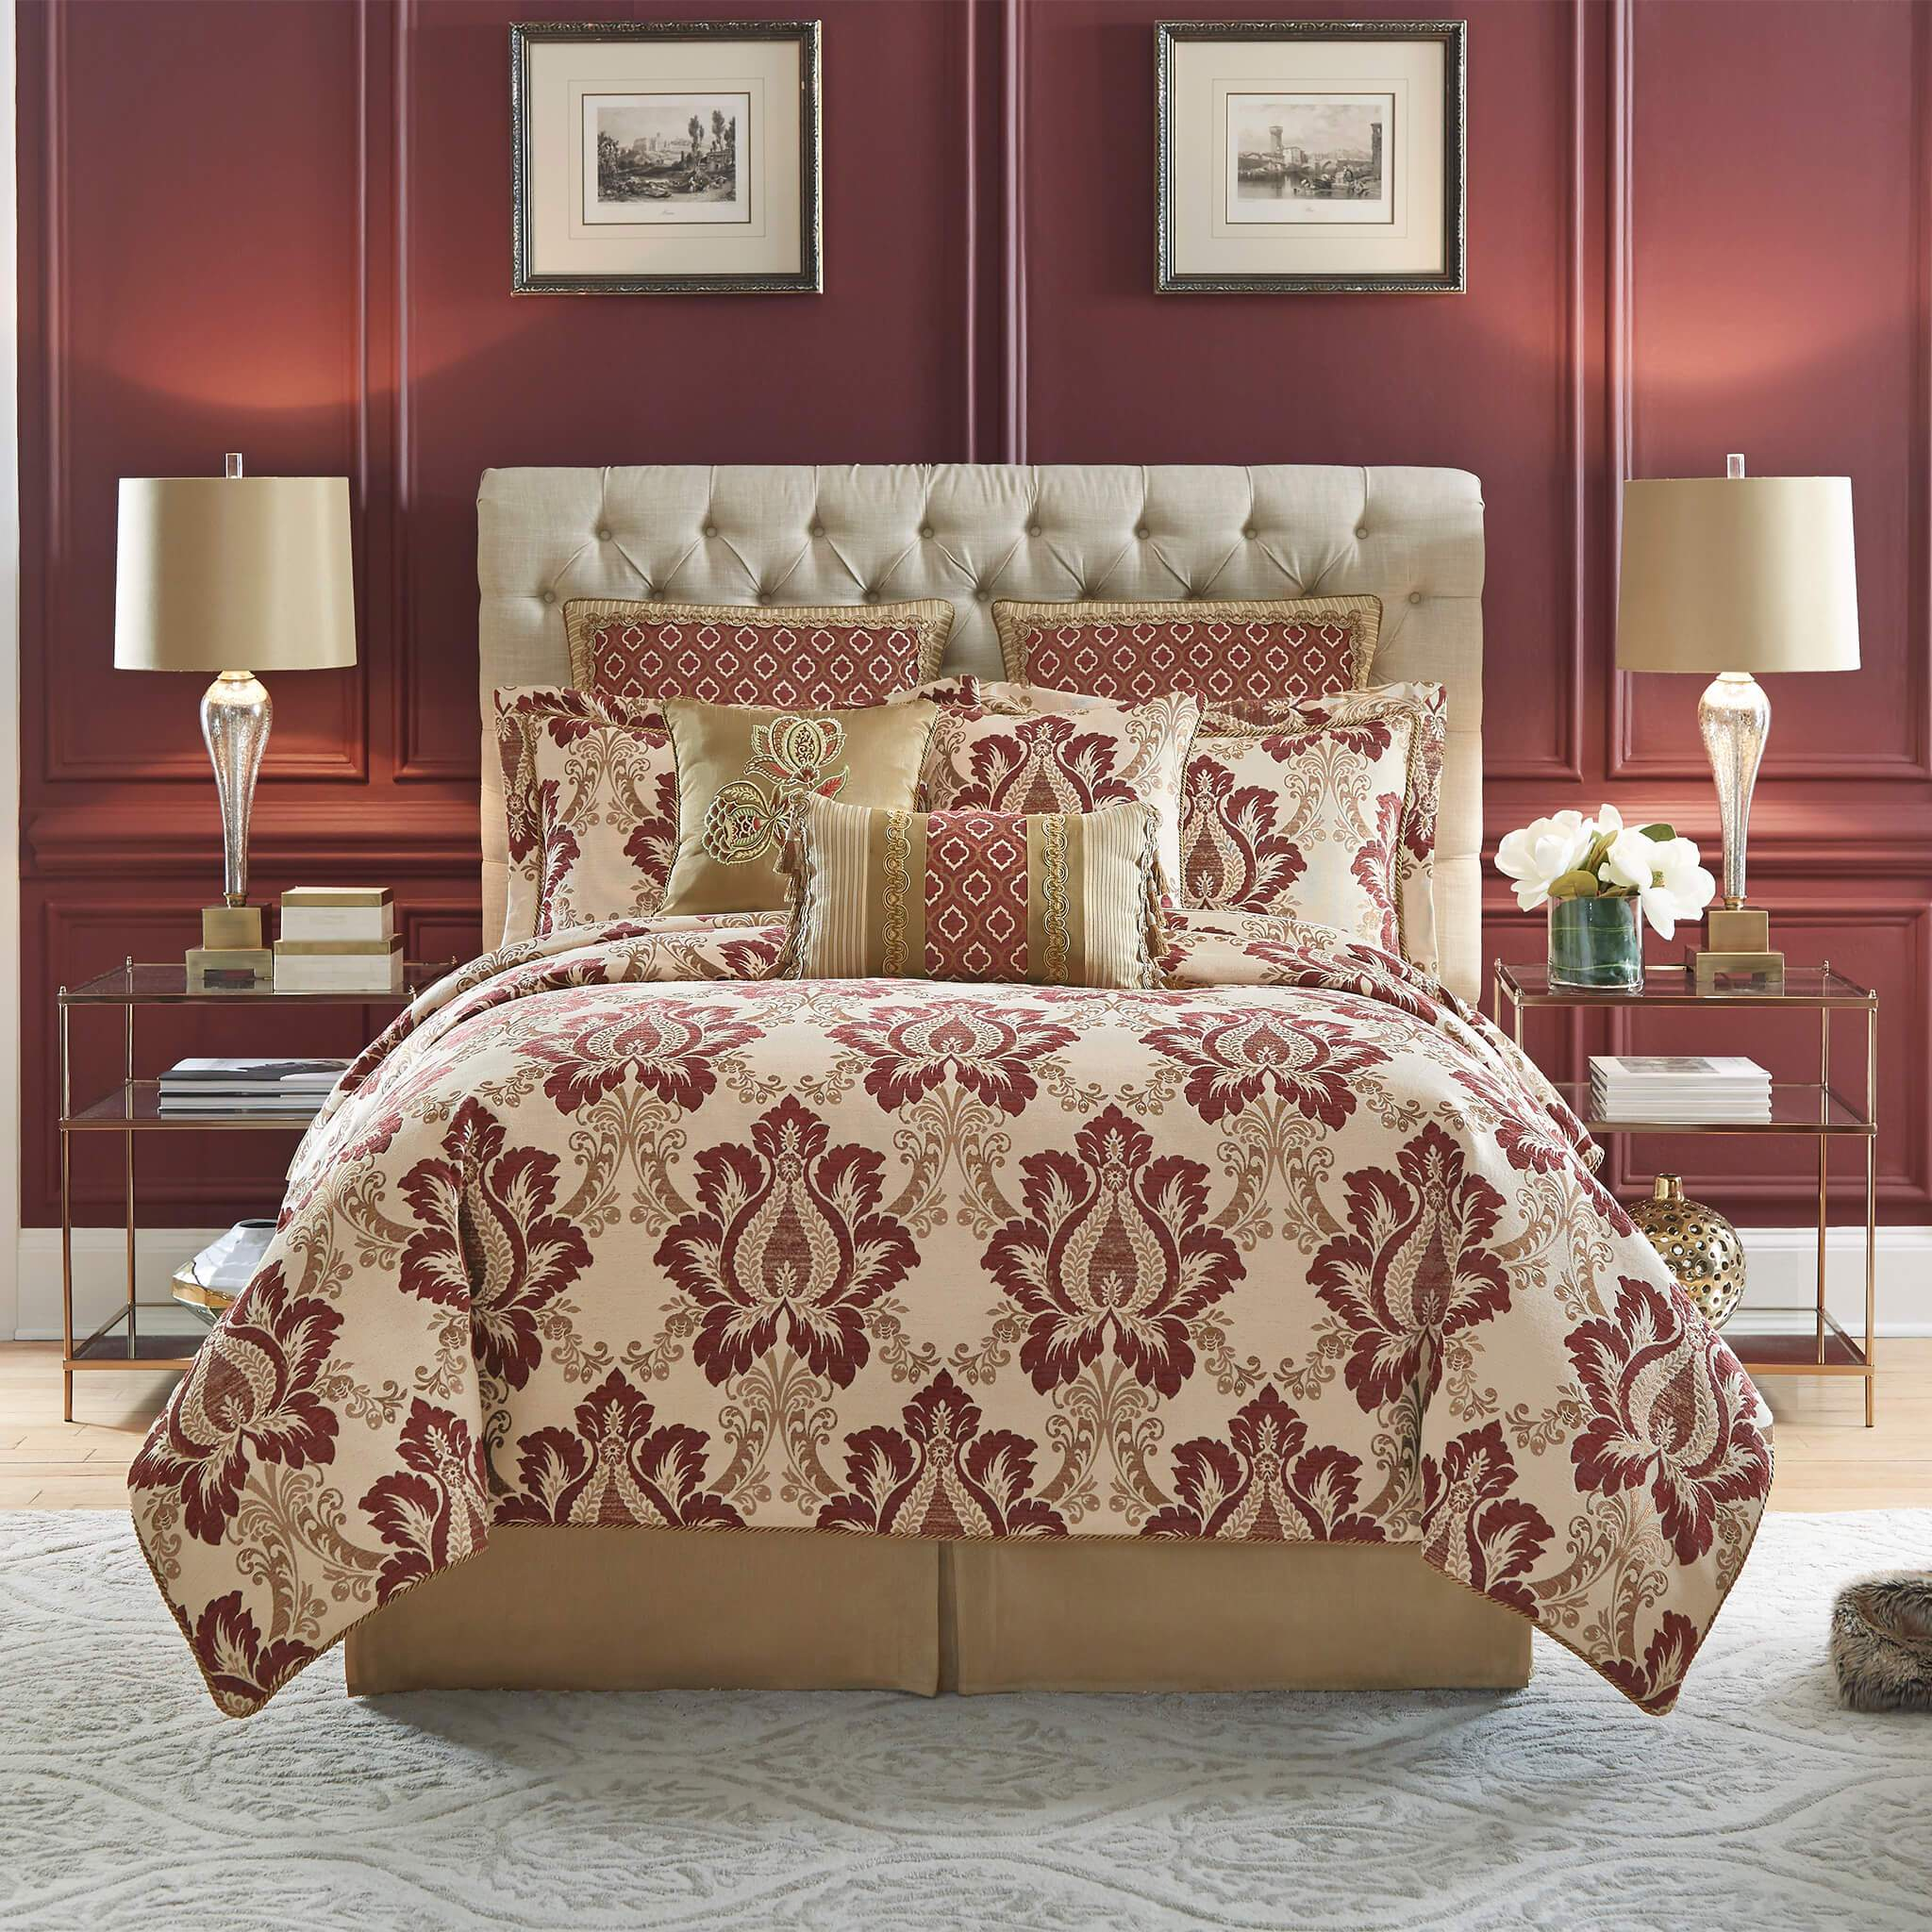 Comforter Sets | Croscill Home